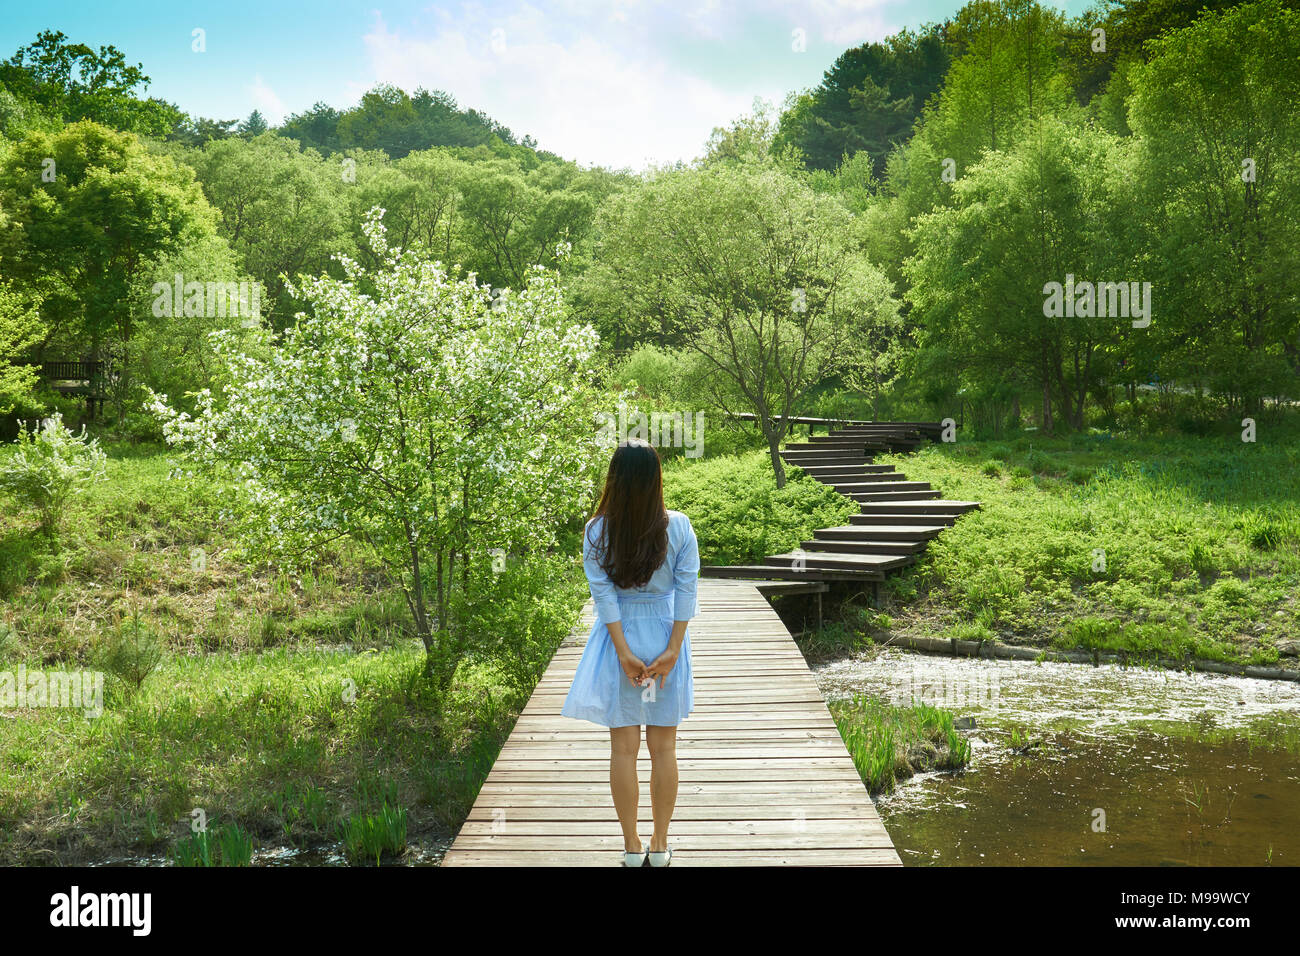 Beautiful view of nature with woman in blue skirt looking into the sky reminiscing memories of the past on a bridge that goes over a small pond. - Stock Image